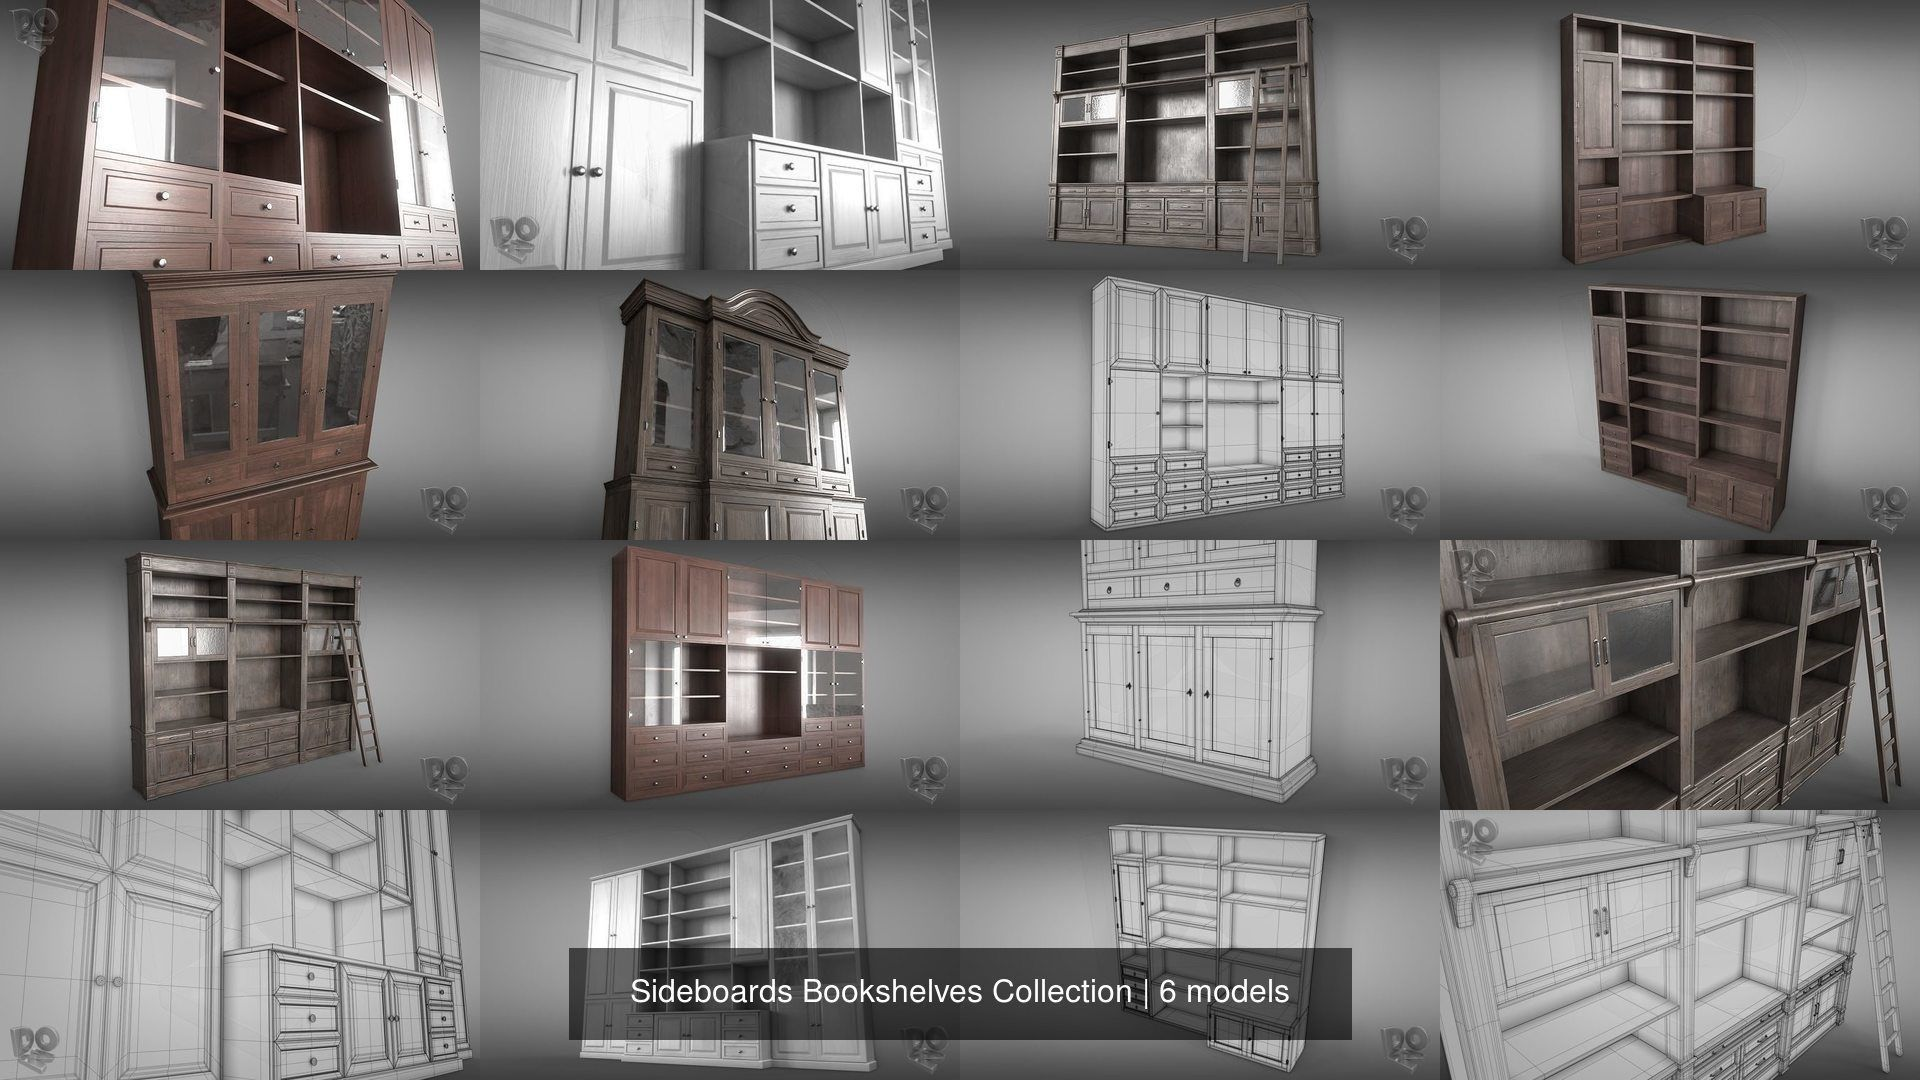 Sideboards Bookshelves Collection